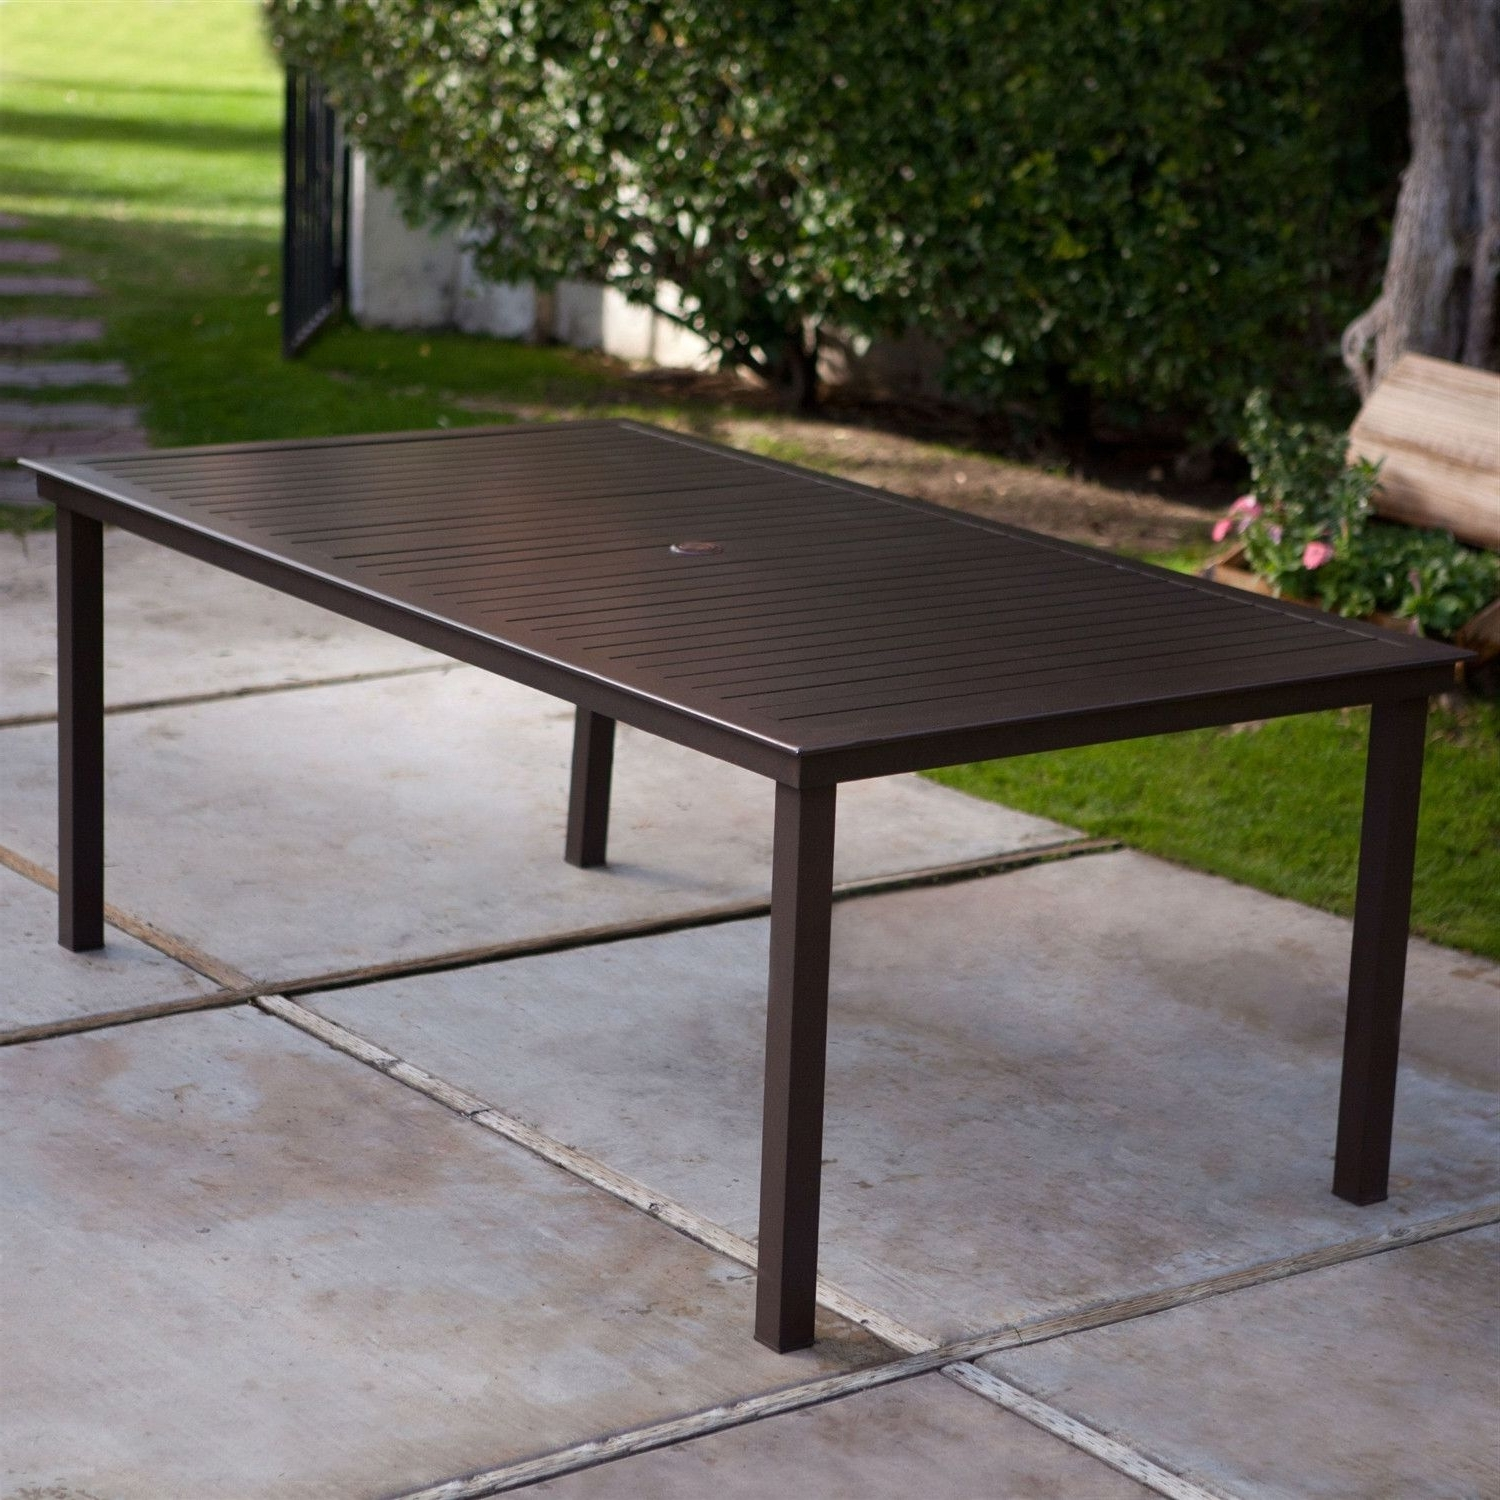 Spectacular Patio Table With Umbrella Hole F39X In Rustic Interior With Widely Used Patio Tables With Umbrella Hole (View 15 of 20)